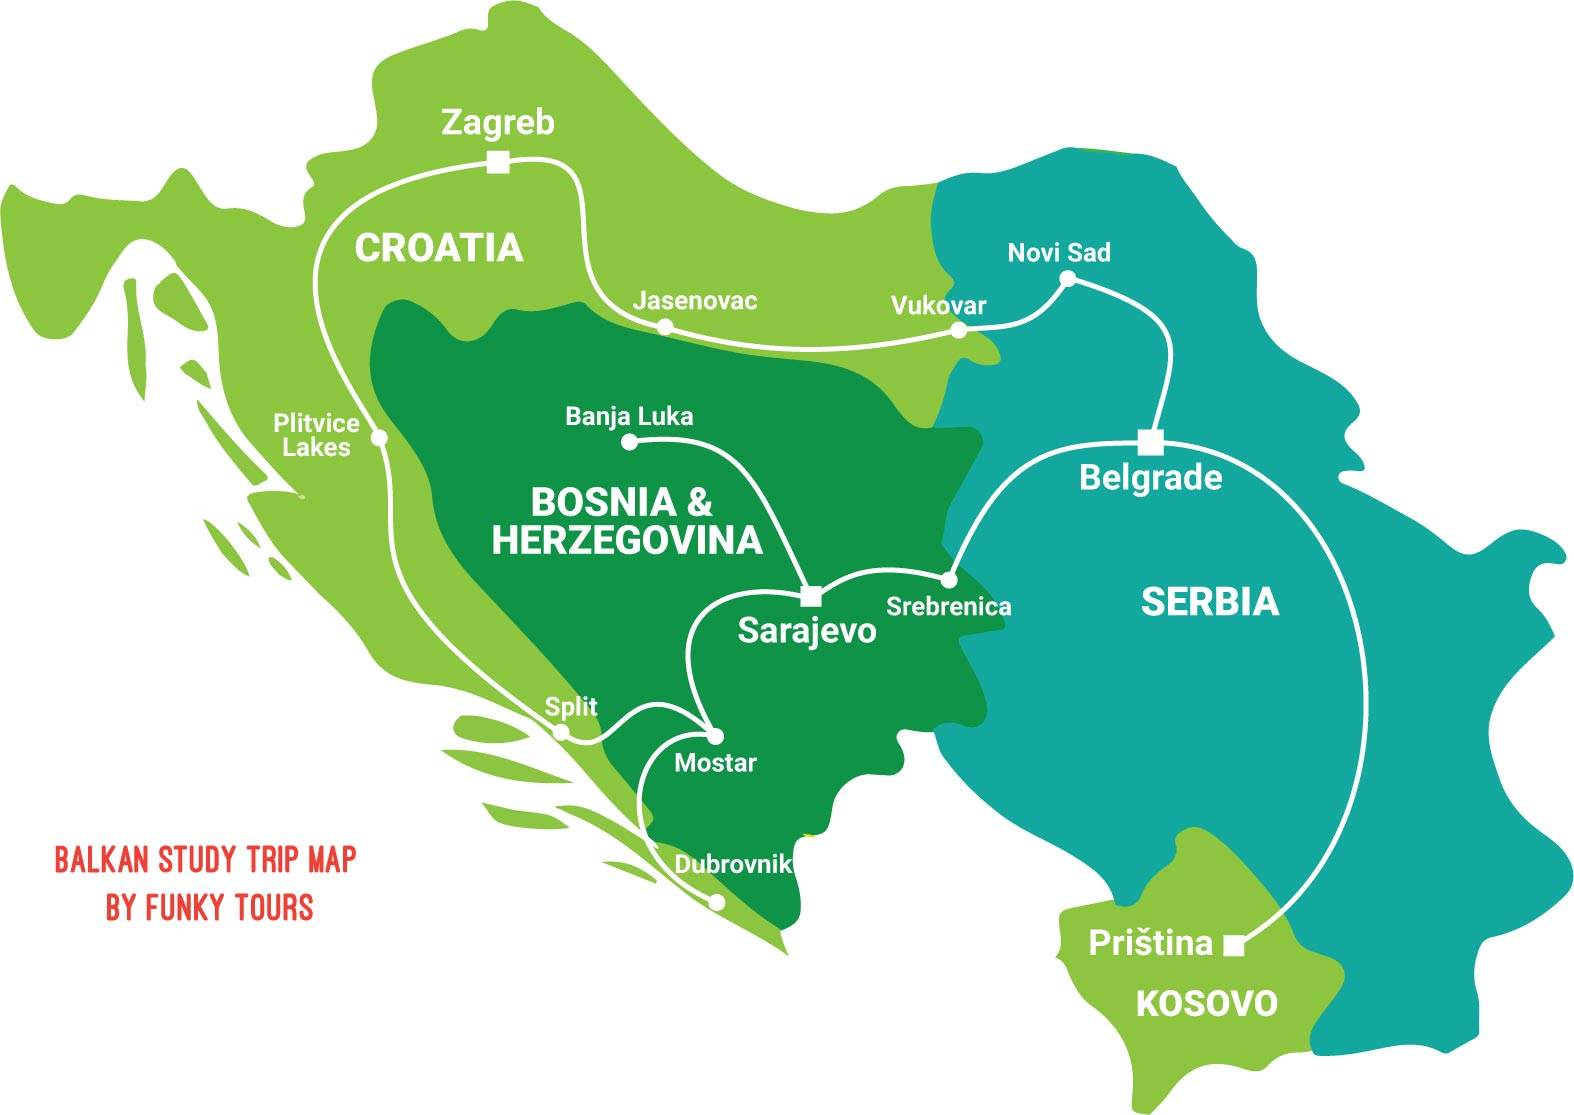 Balkan Study Tour Map by Funky Tours including Bosnia and Herzegovina, Croatia, Serbia and Kosovo.